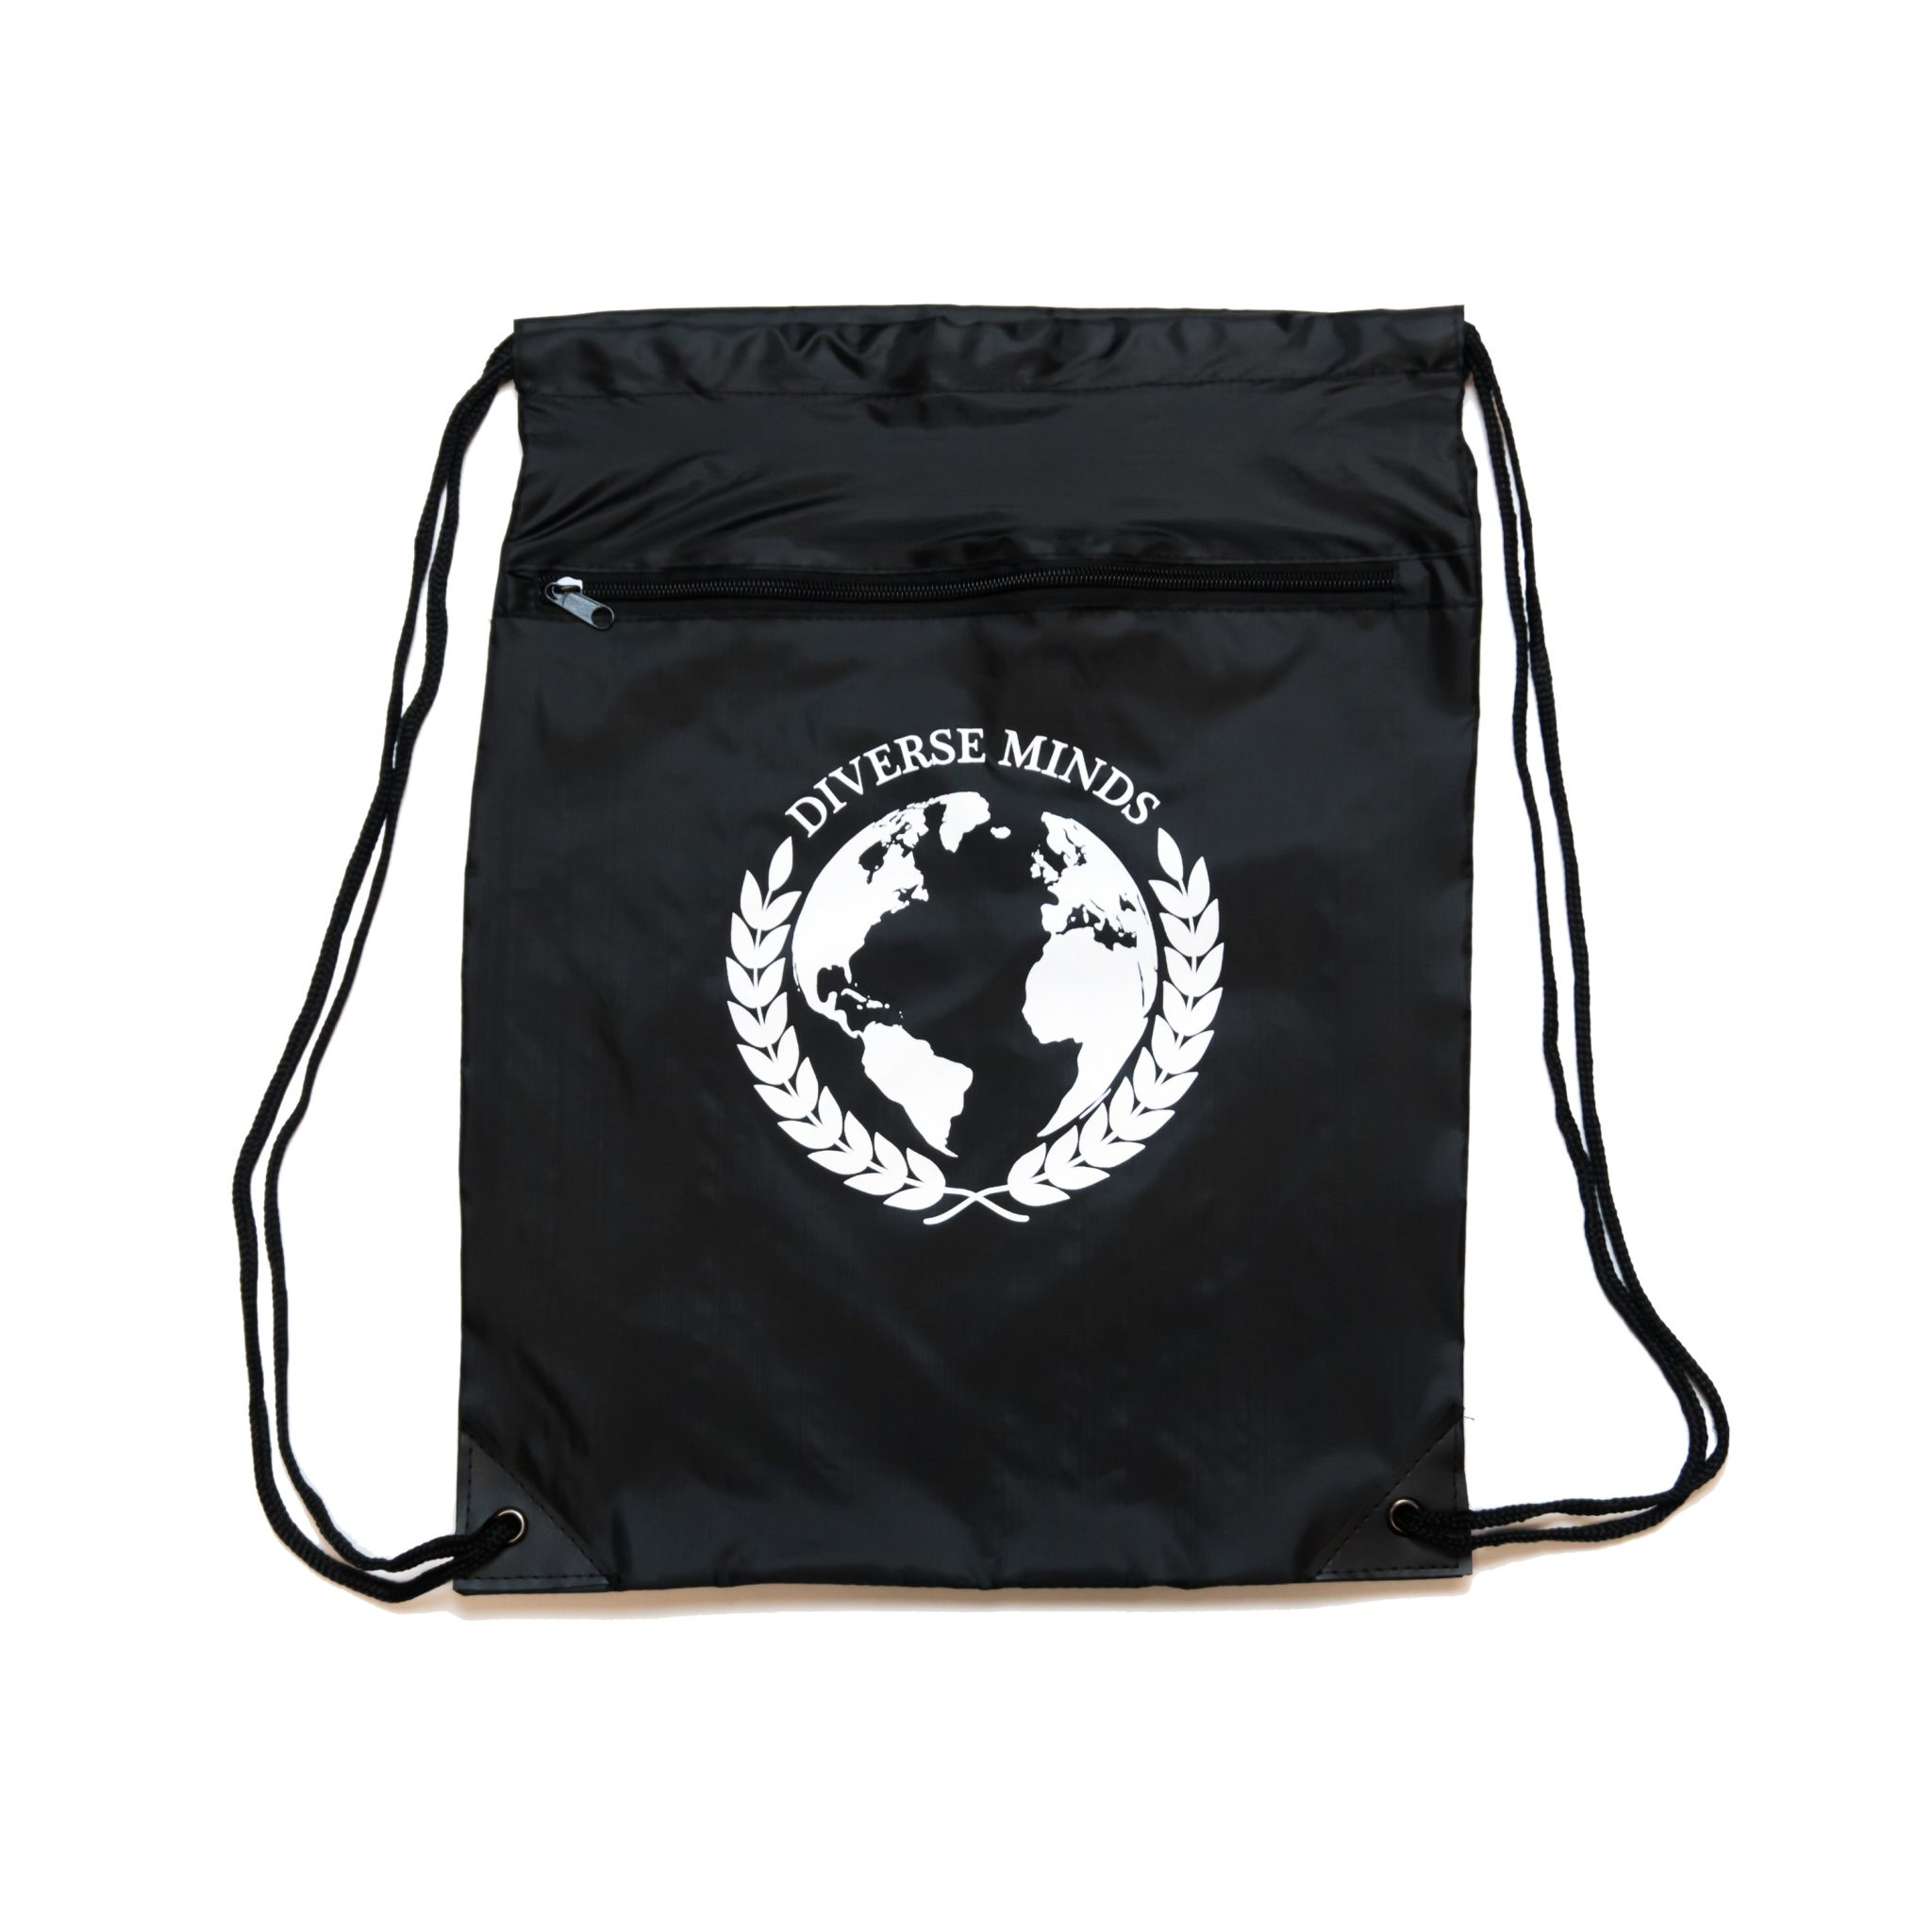 Diverse Minds Sport Bag Black